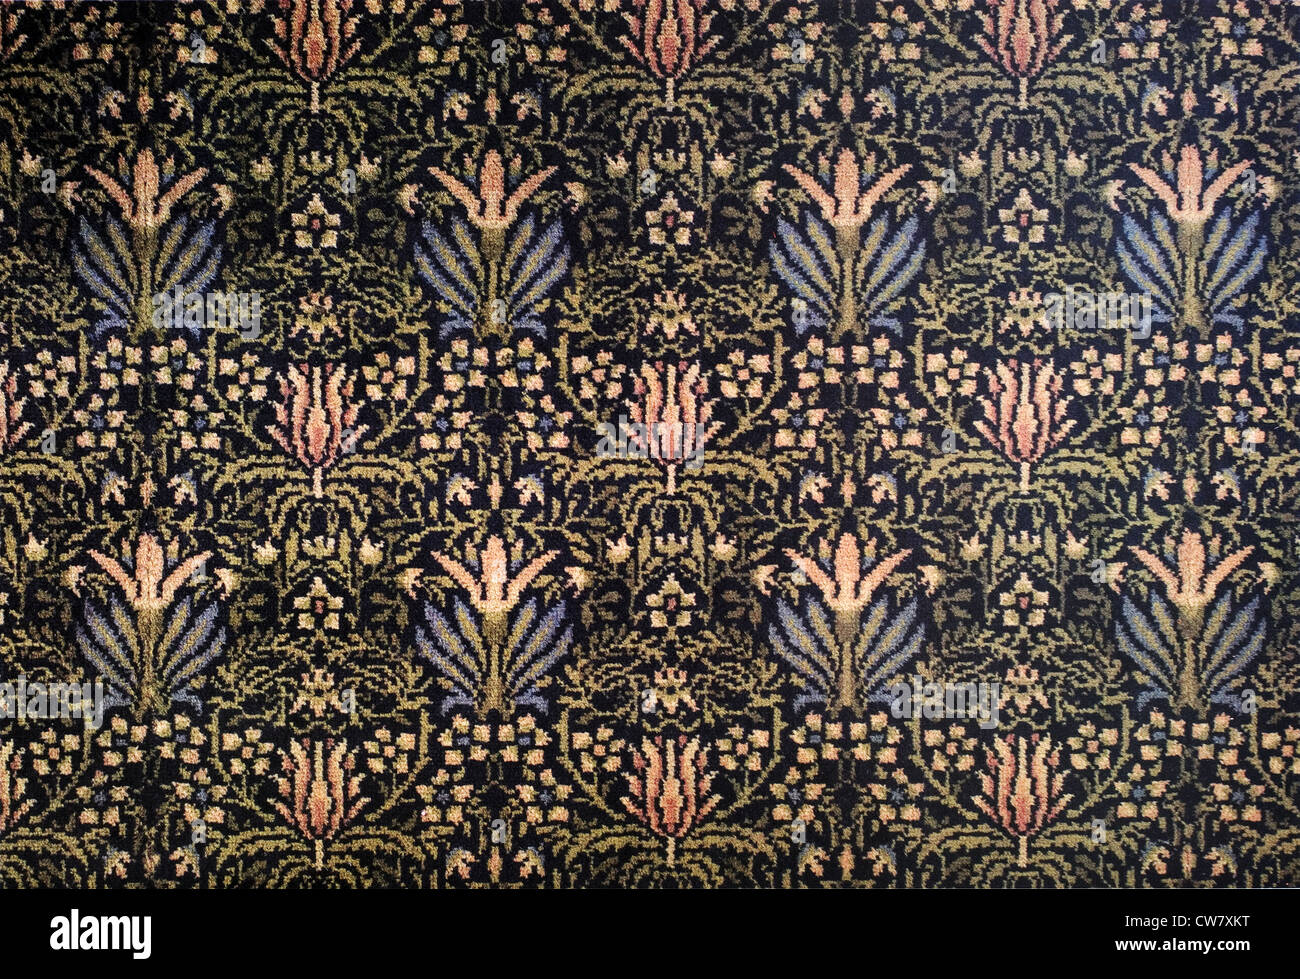 Golden Bough Woven Textile - Stock Image